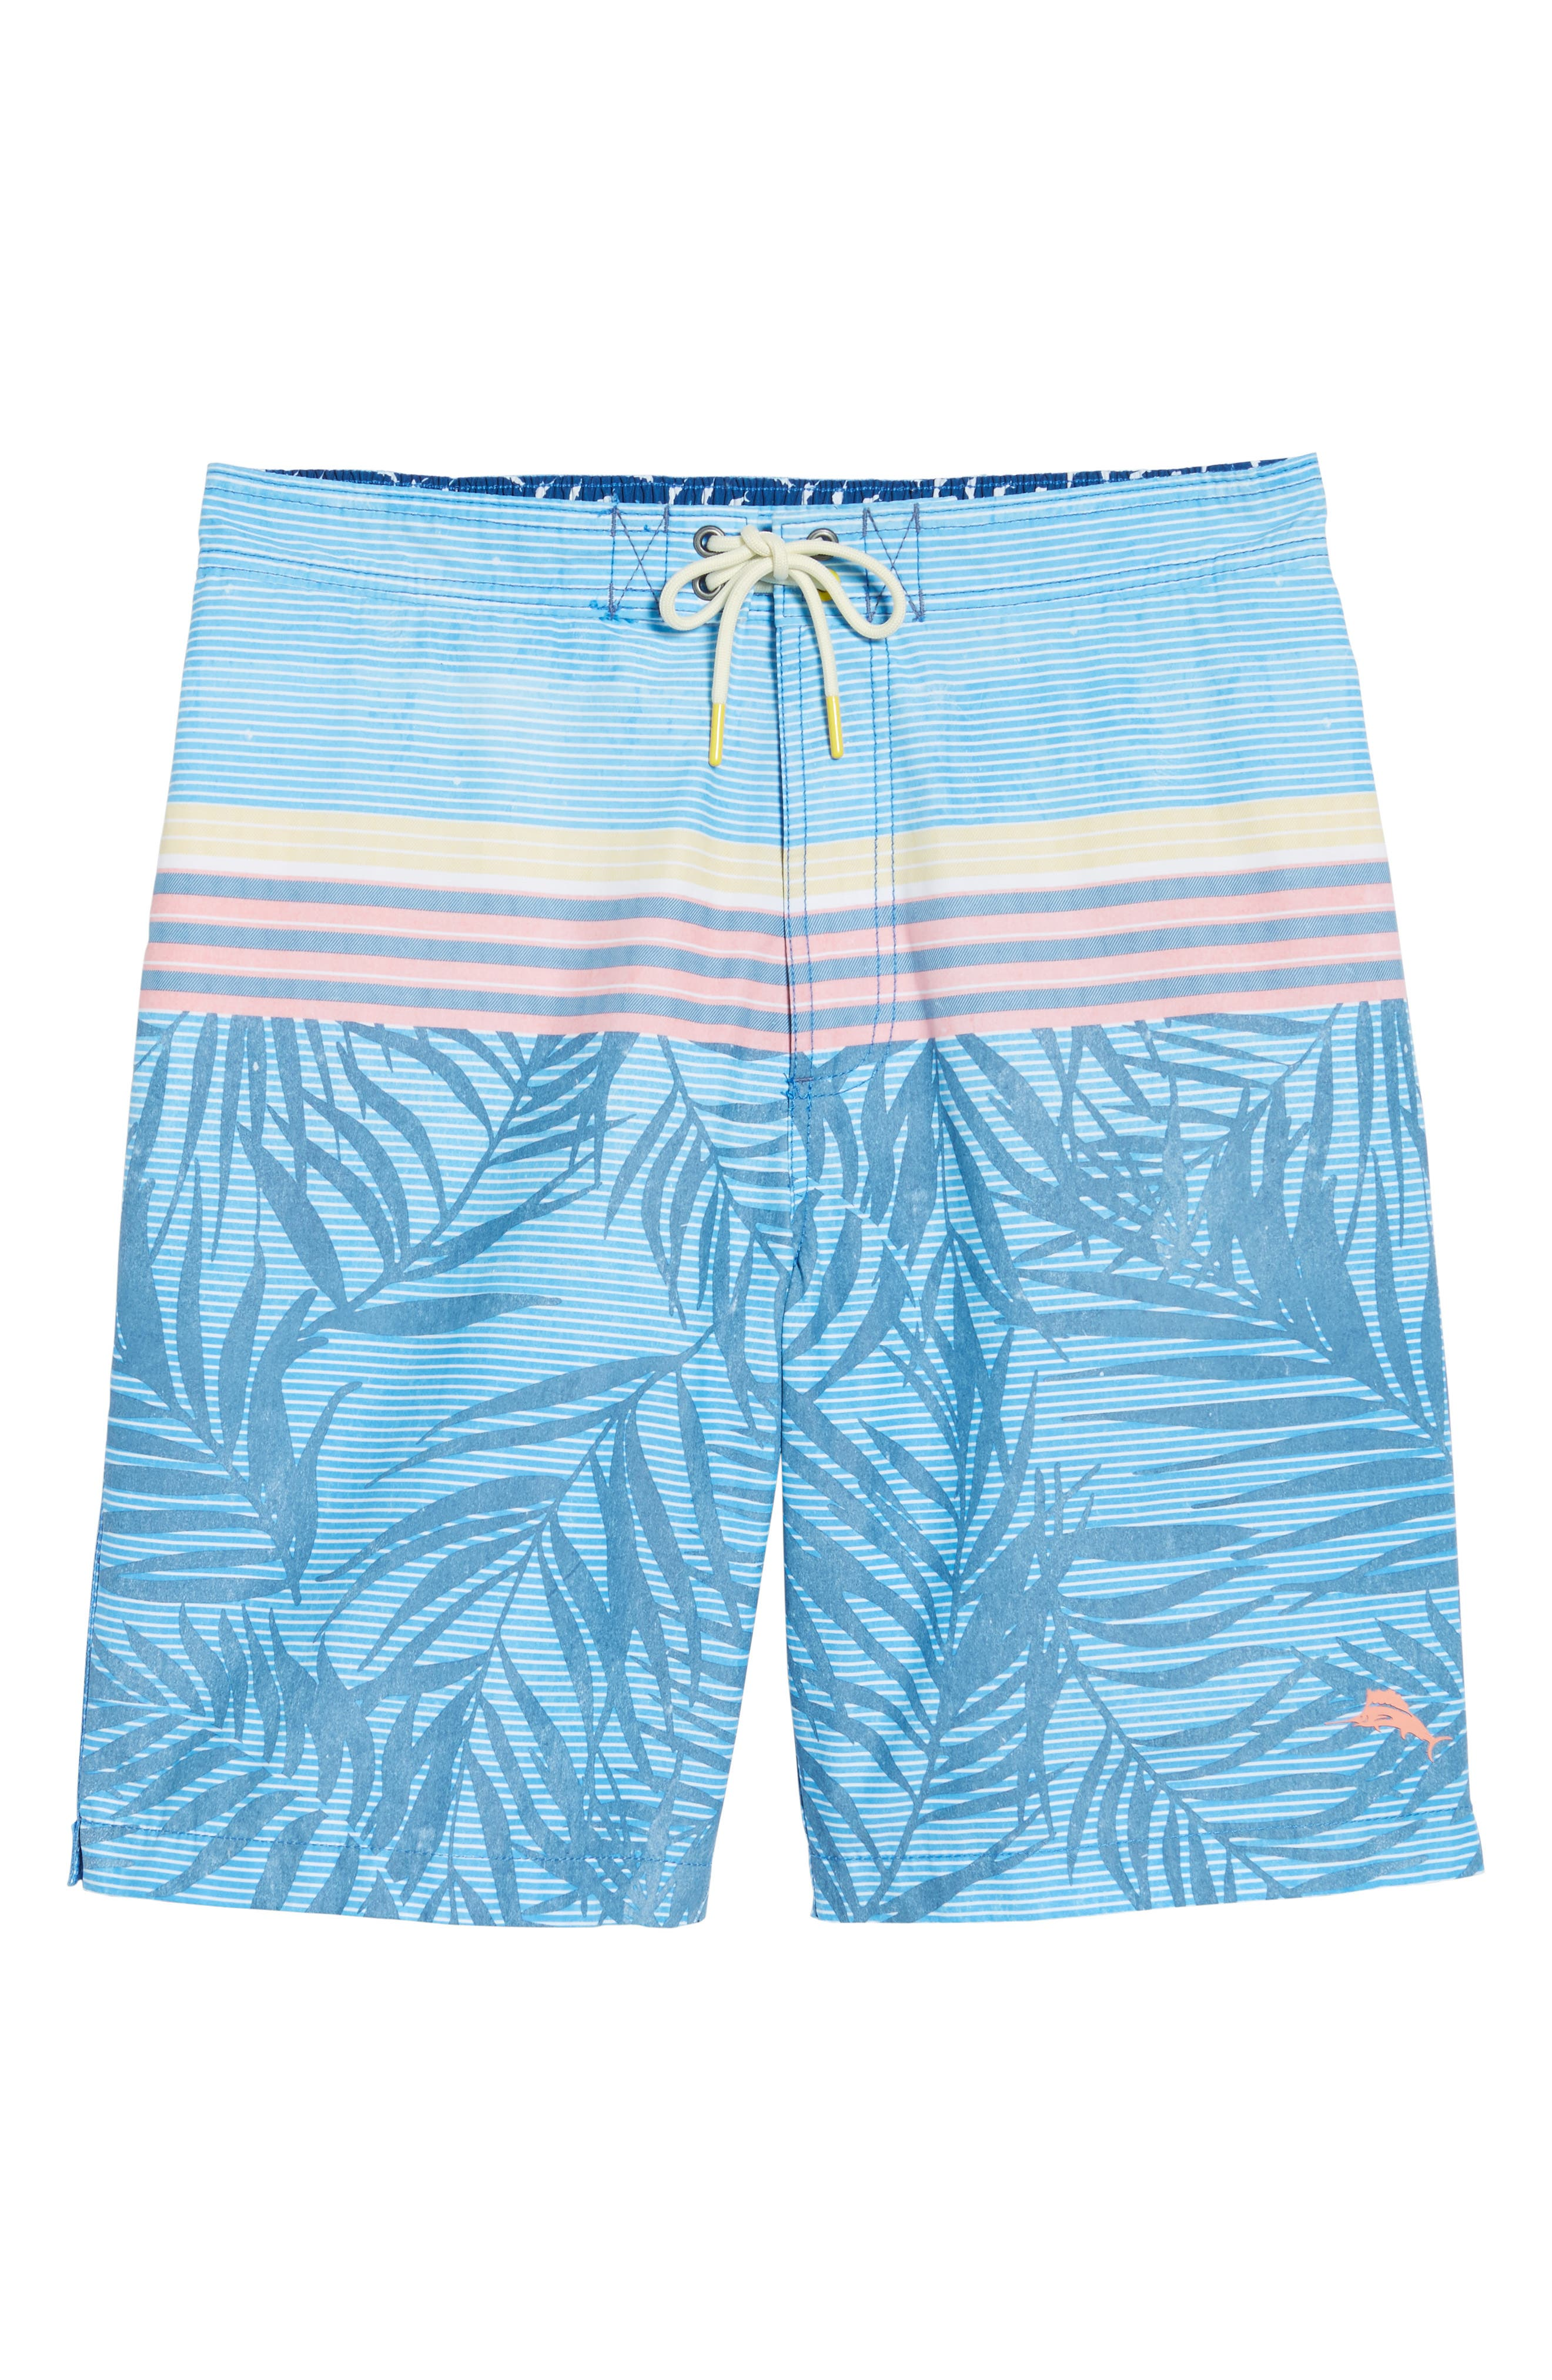 Baja Fronds & Stripes Board Shorts,                             Alternate thumbnail 6, color,                             Dockside Blue